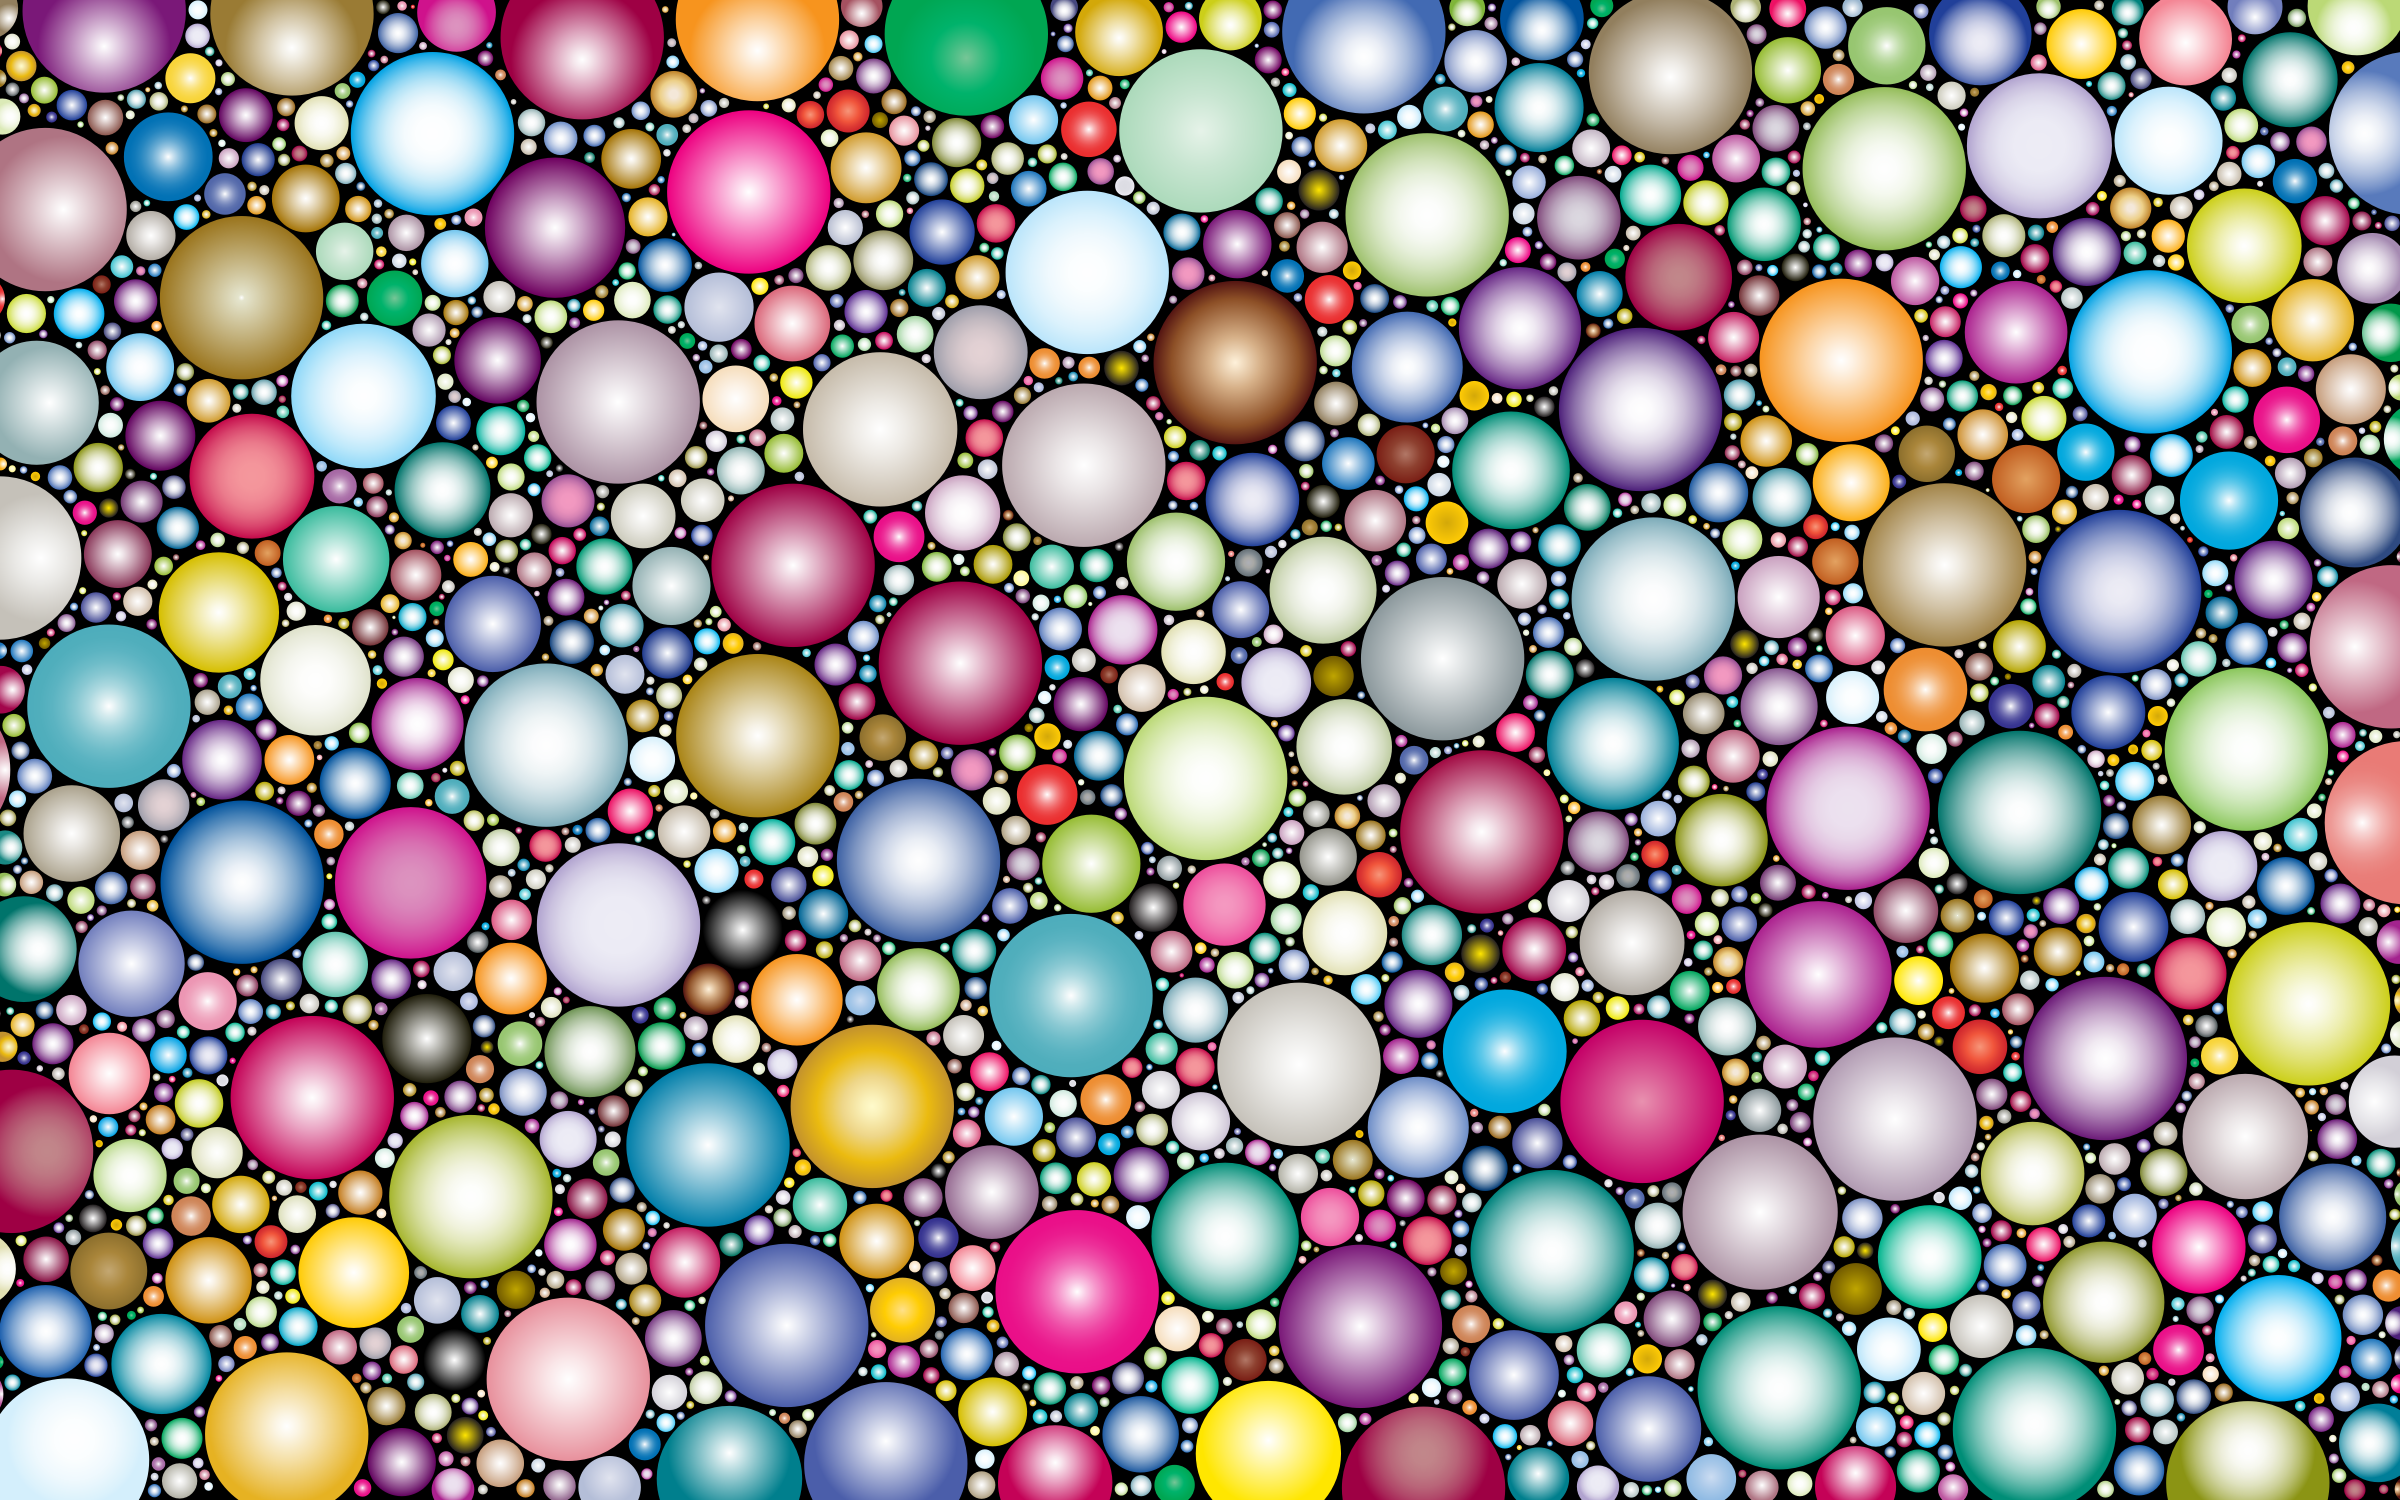 Prismatic Packed Circles 4 by GDJ